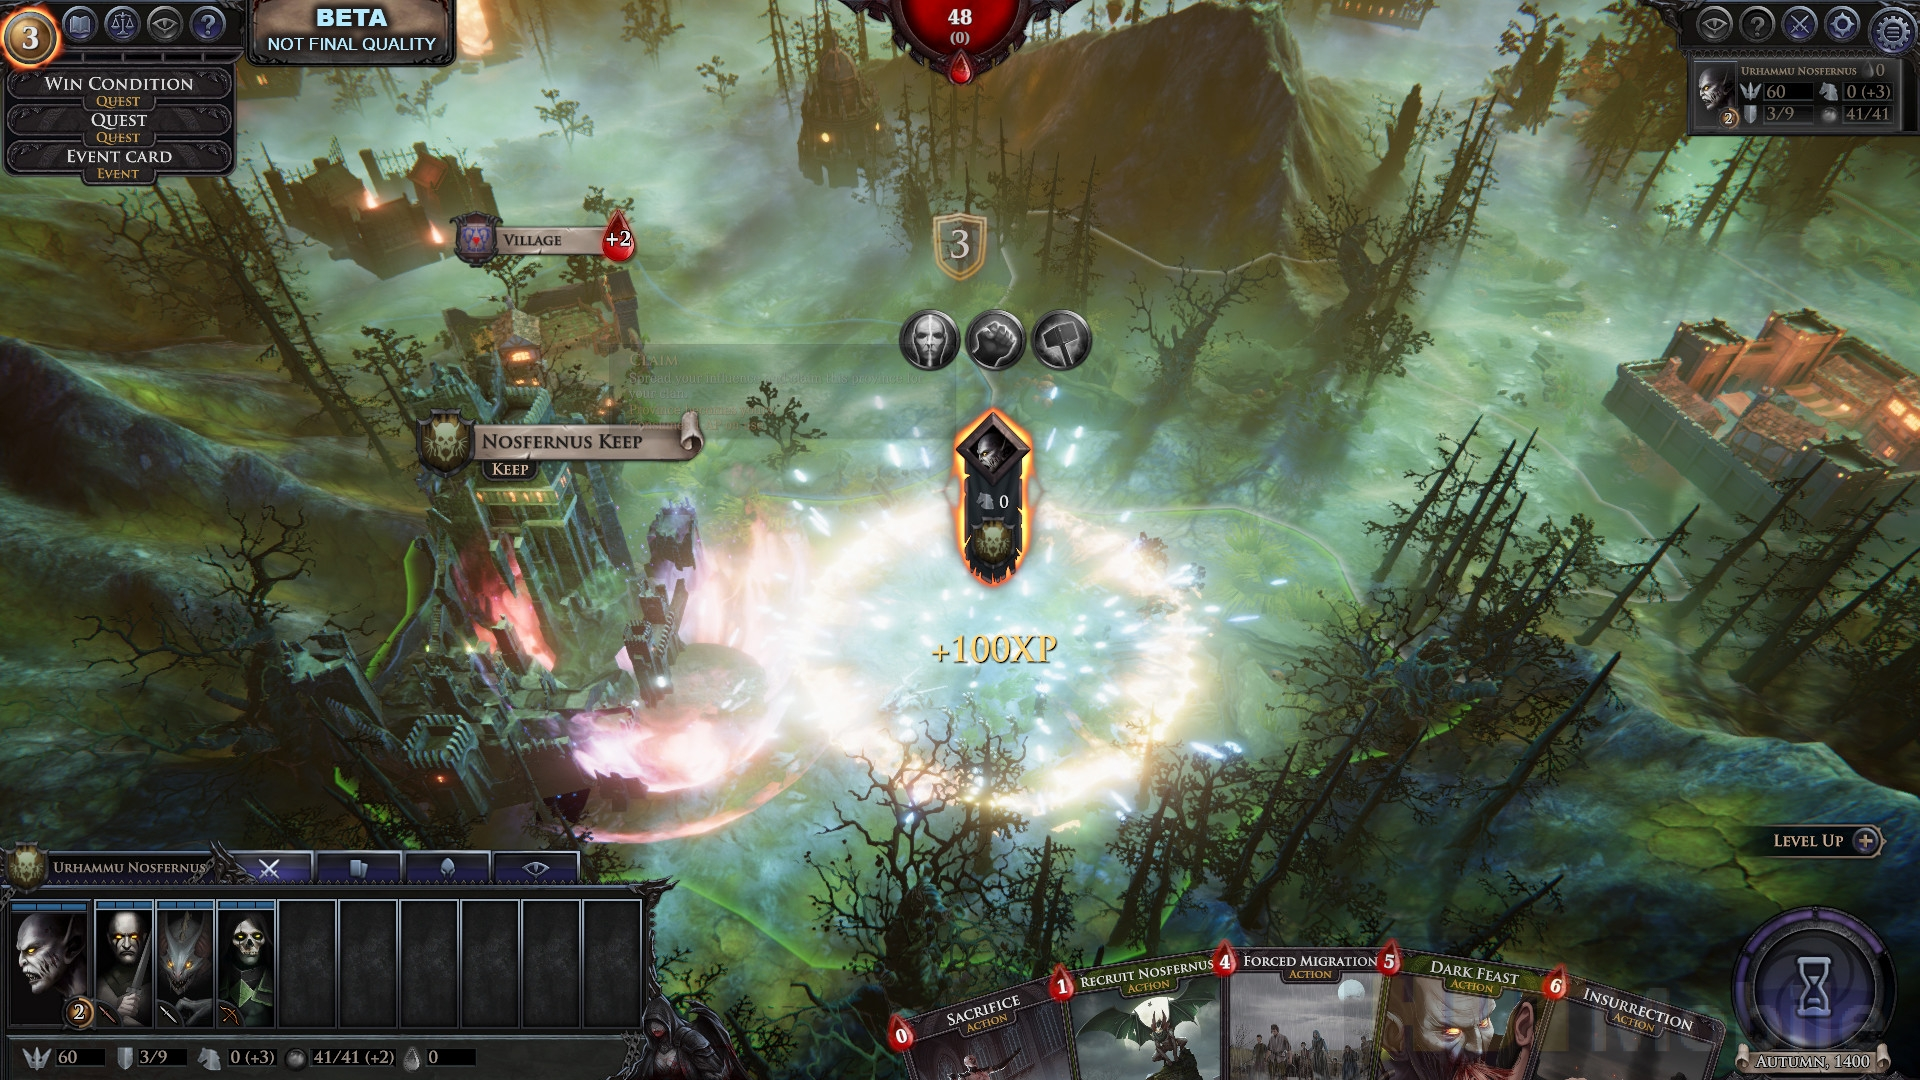 Immortal Realms: Vampire Wars Key Features and Storyline